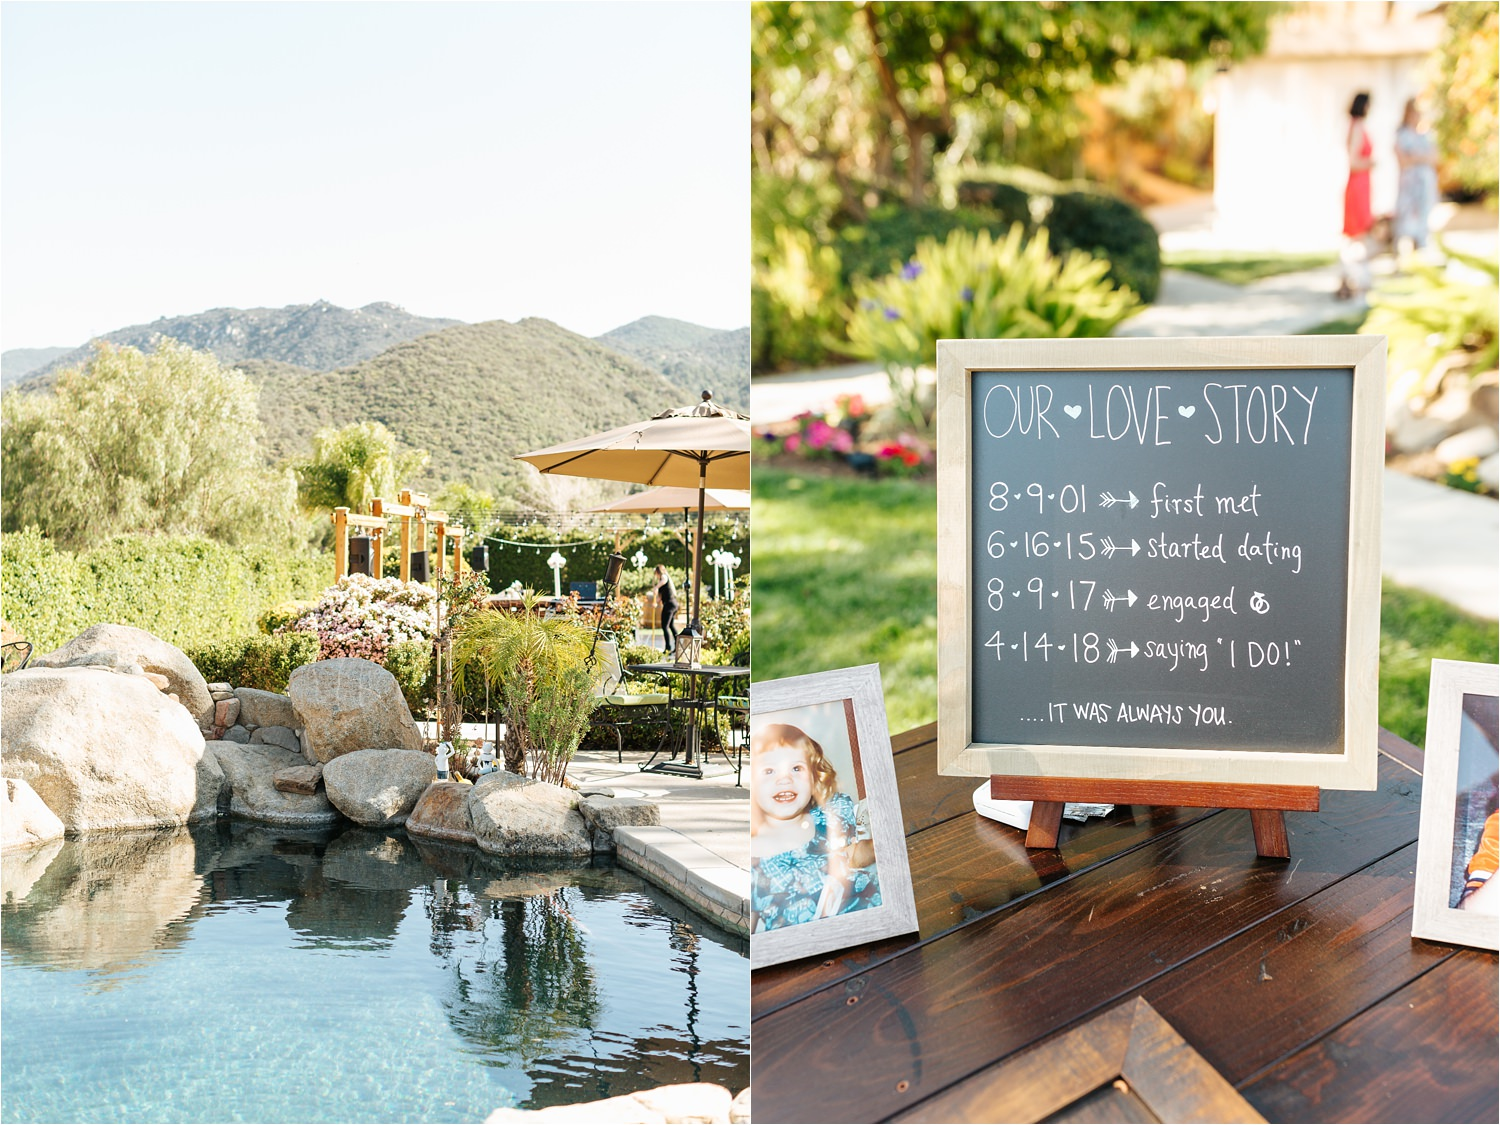 Backyard Wedding - DIY details - California Wedding - https://brittneyhannonphotography.com